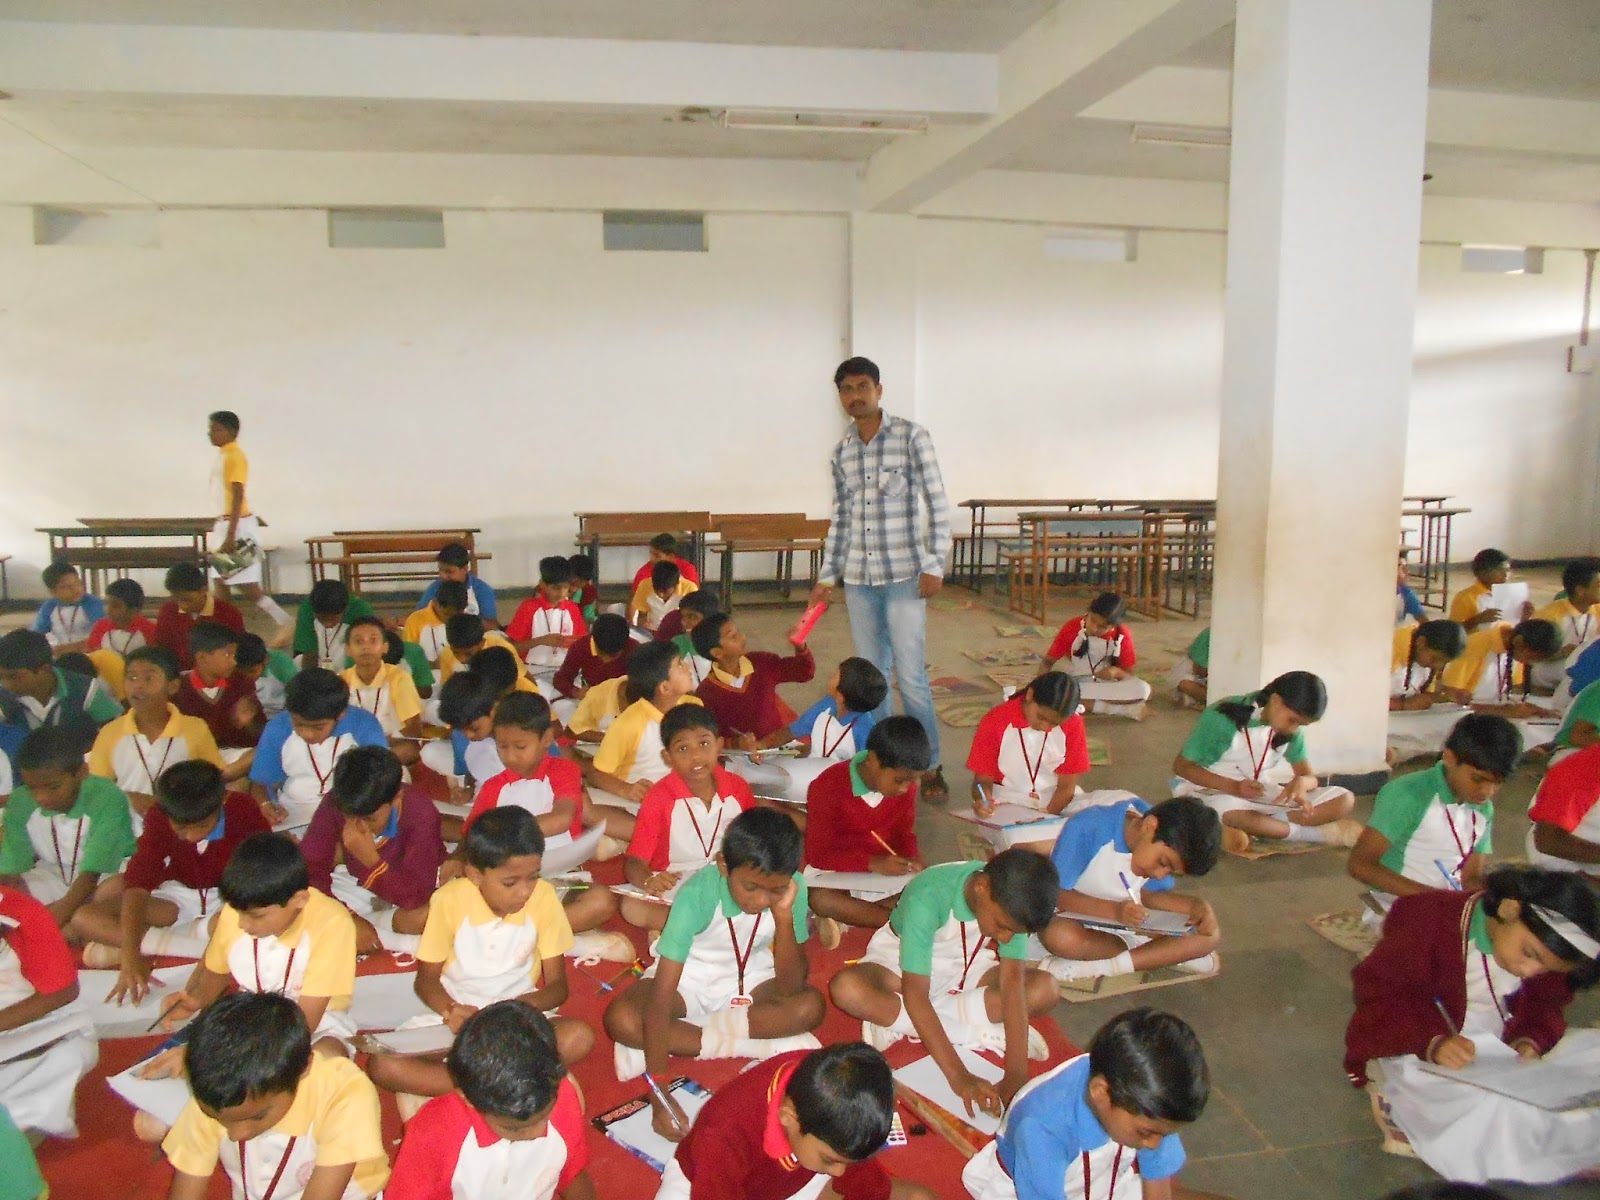 dharwad leader conducts essay and drawing competition for 150 ravi ranjan amitrao and vallabha of sdmcet dharwad conducted swadesh expo 13 an inter school essay writing and drawing competition for schools in